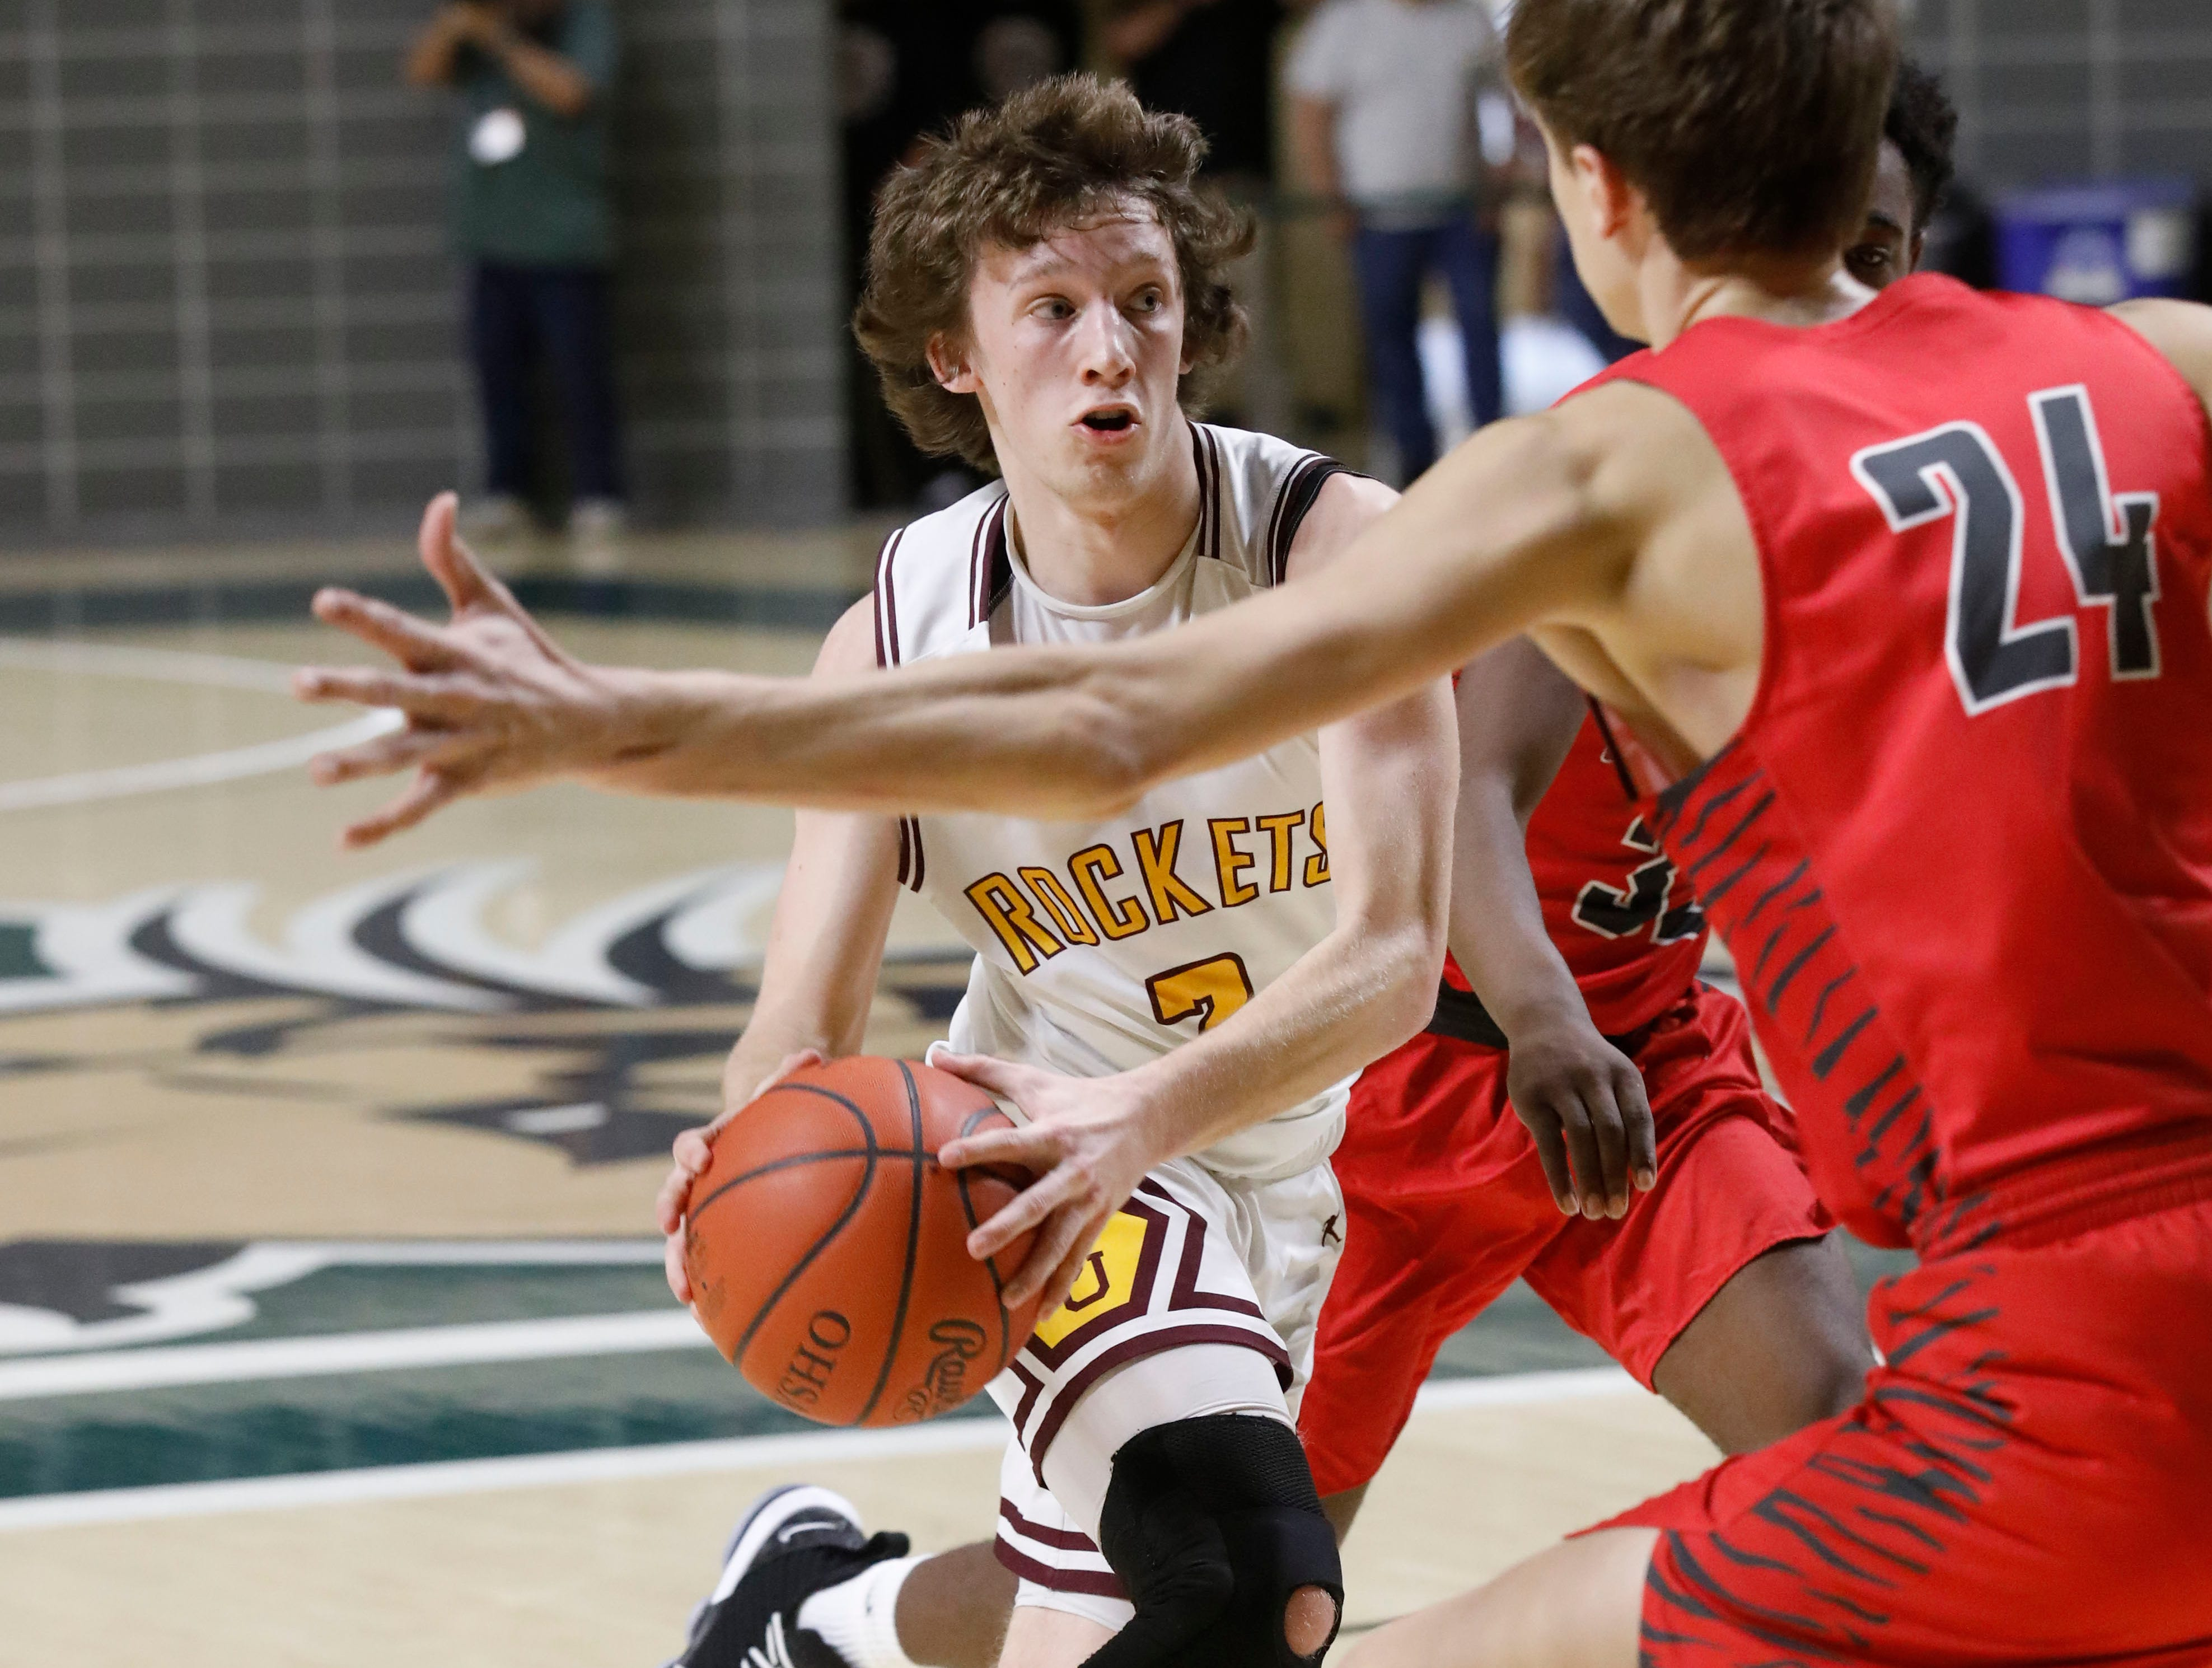 Berne Union lost to Glenwood 69-64 in a Division IV Regional Semifinal game at the Ohio University Convocation Center in Athens.